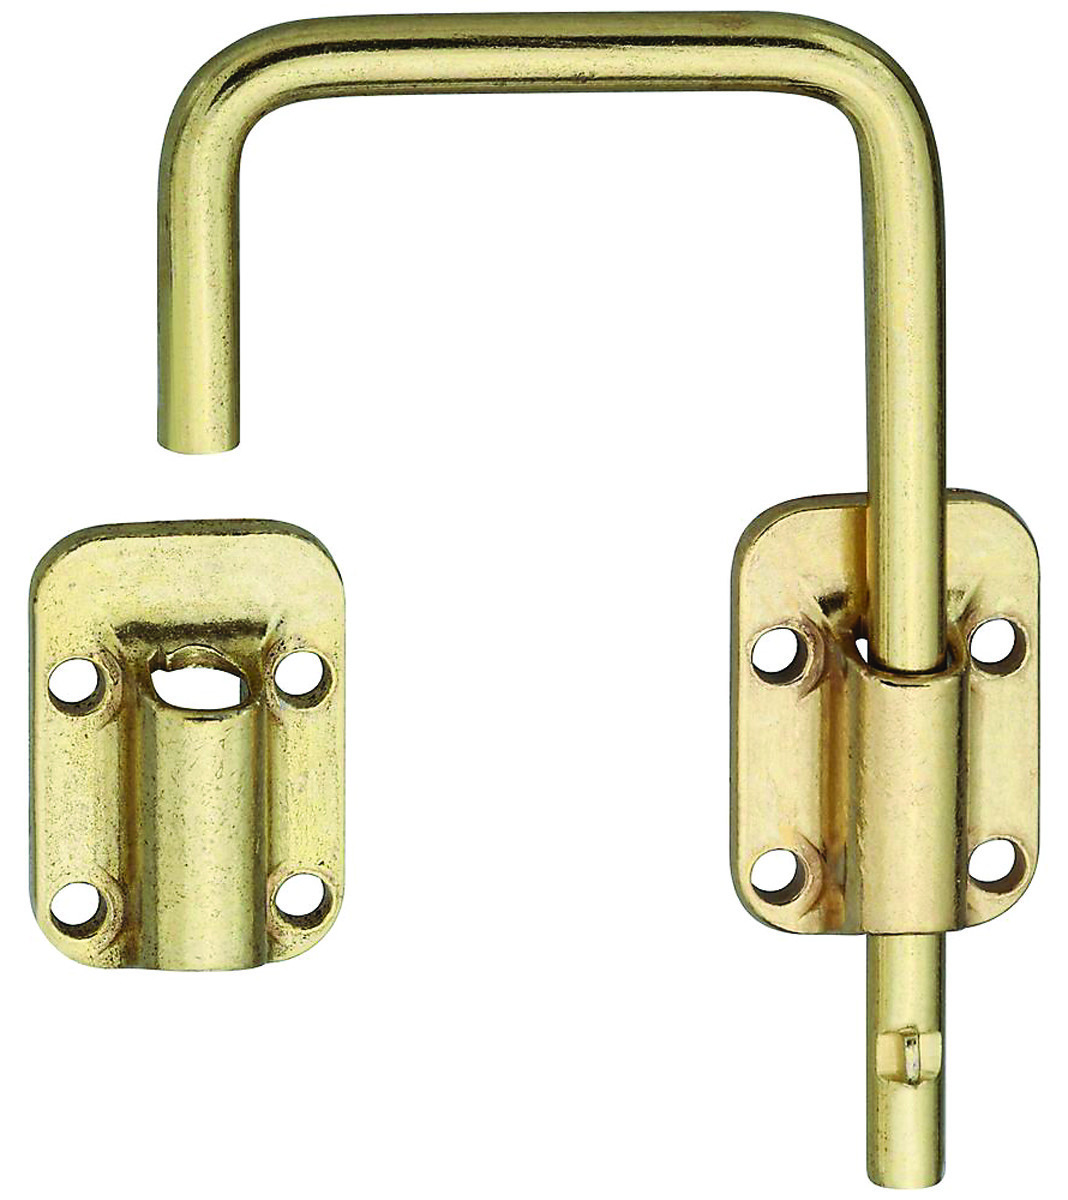 National Hardware N239 004 2 12 Inch Brs Dr Latch 038613239005 2